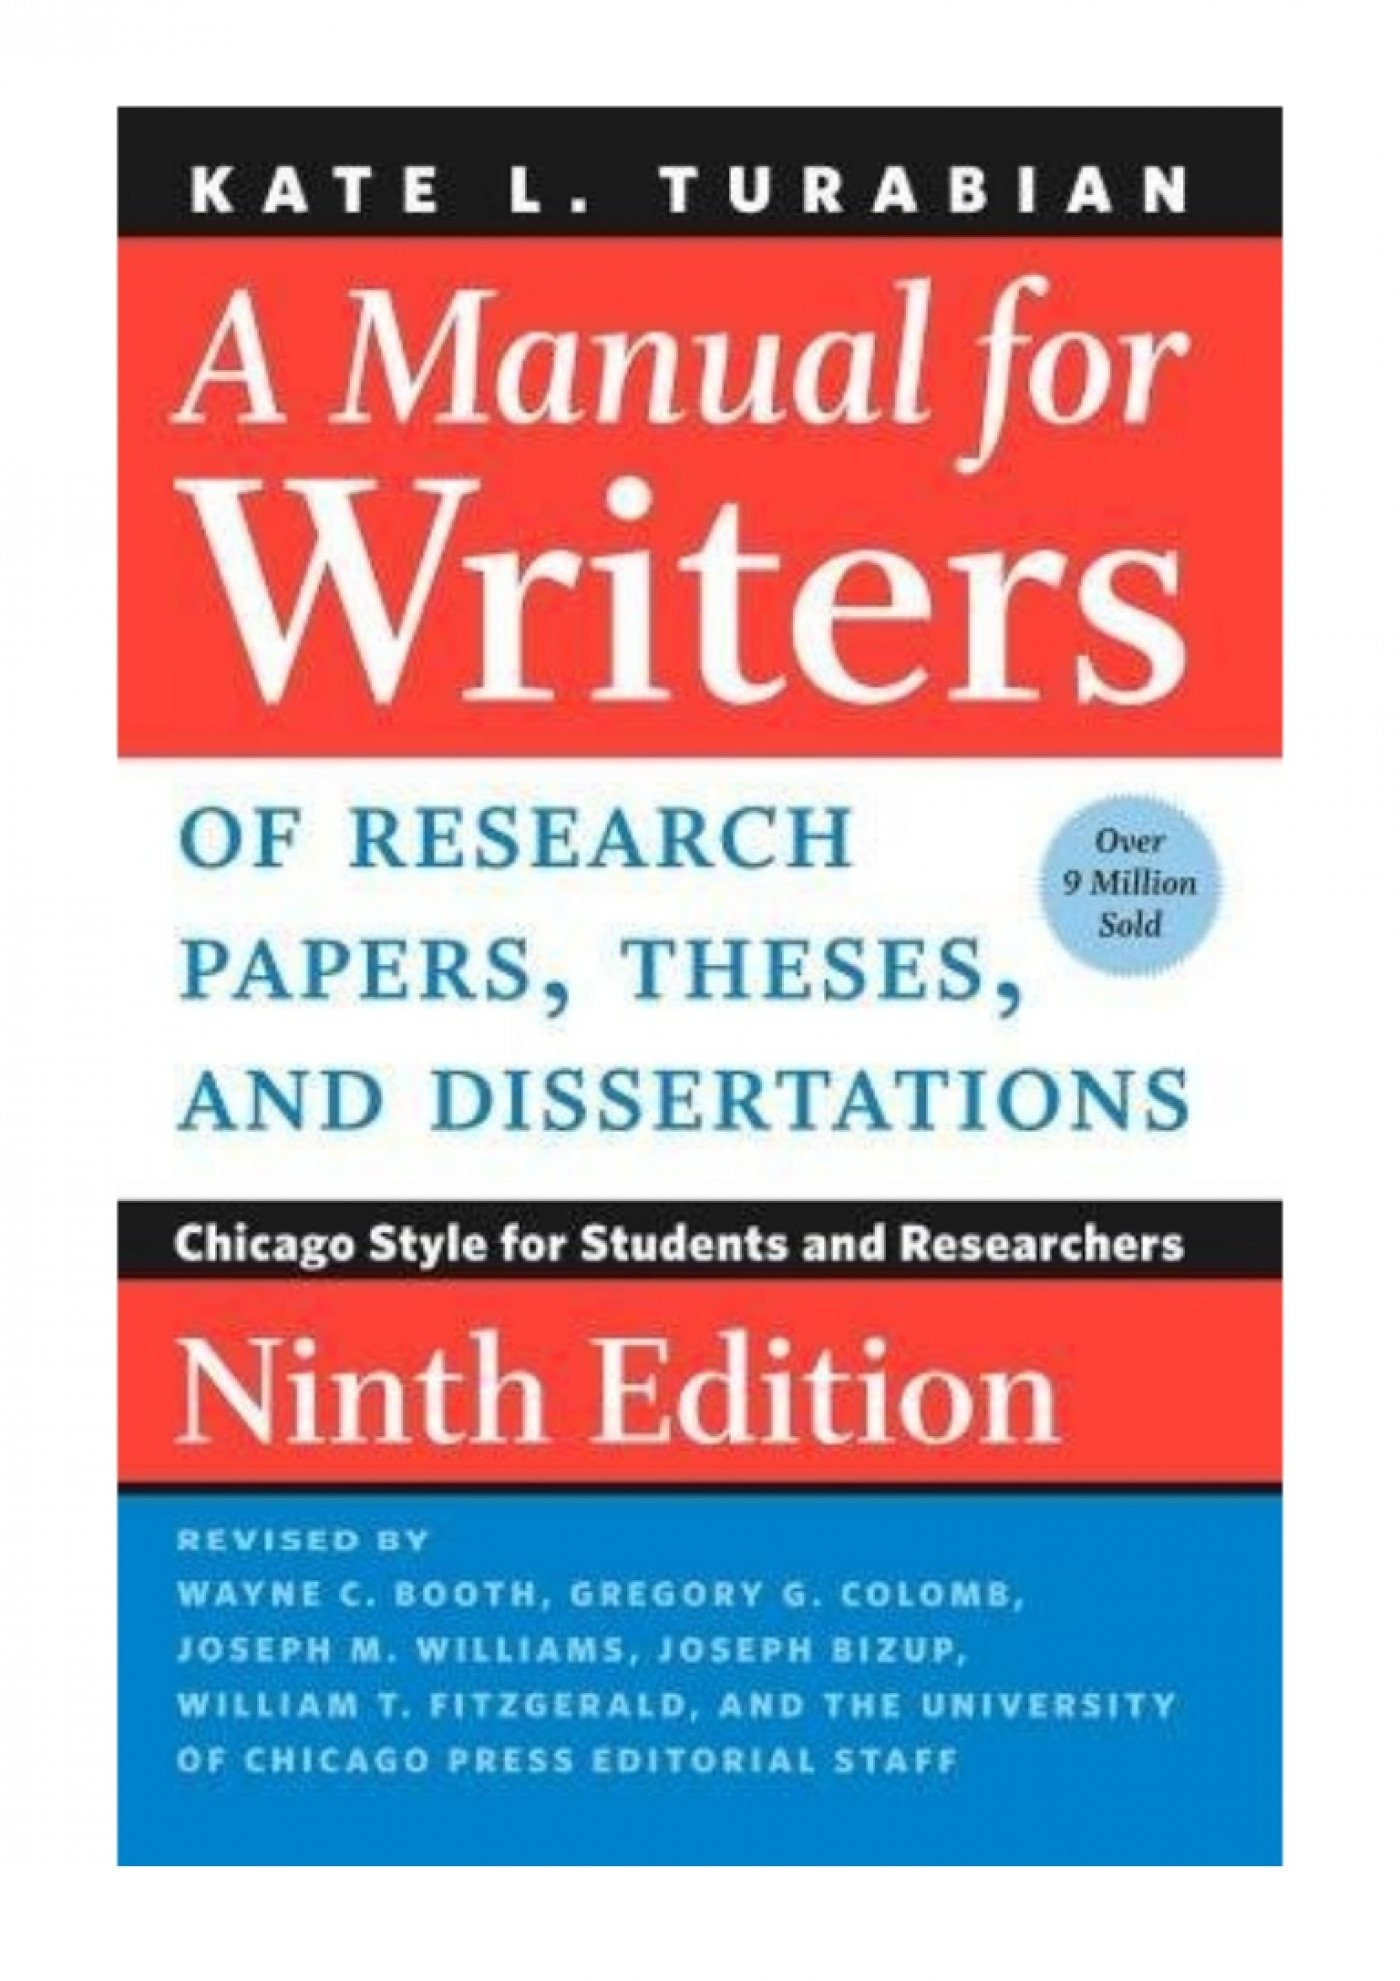 006 Manual For Writers Of Research Papers Theses And Dissertations Turabian Pdf Paper 022643057x Amanualforwritersofresearchpapersthesesanddissertationsnintheditionbykatel Wonderful A 1400